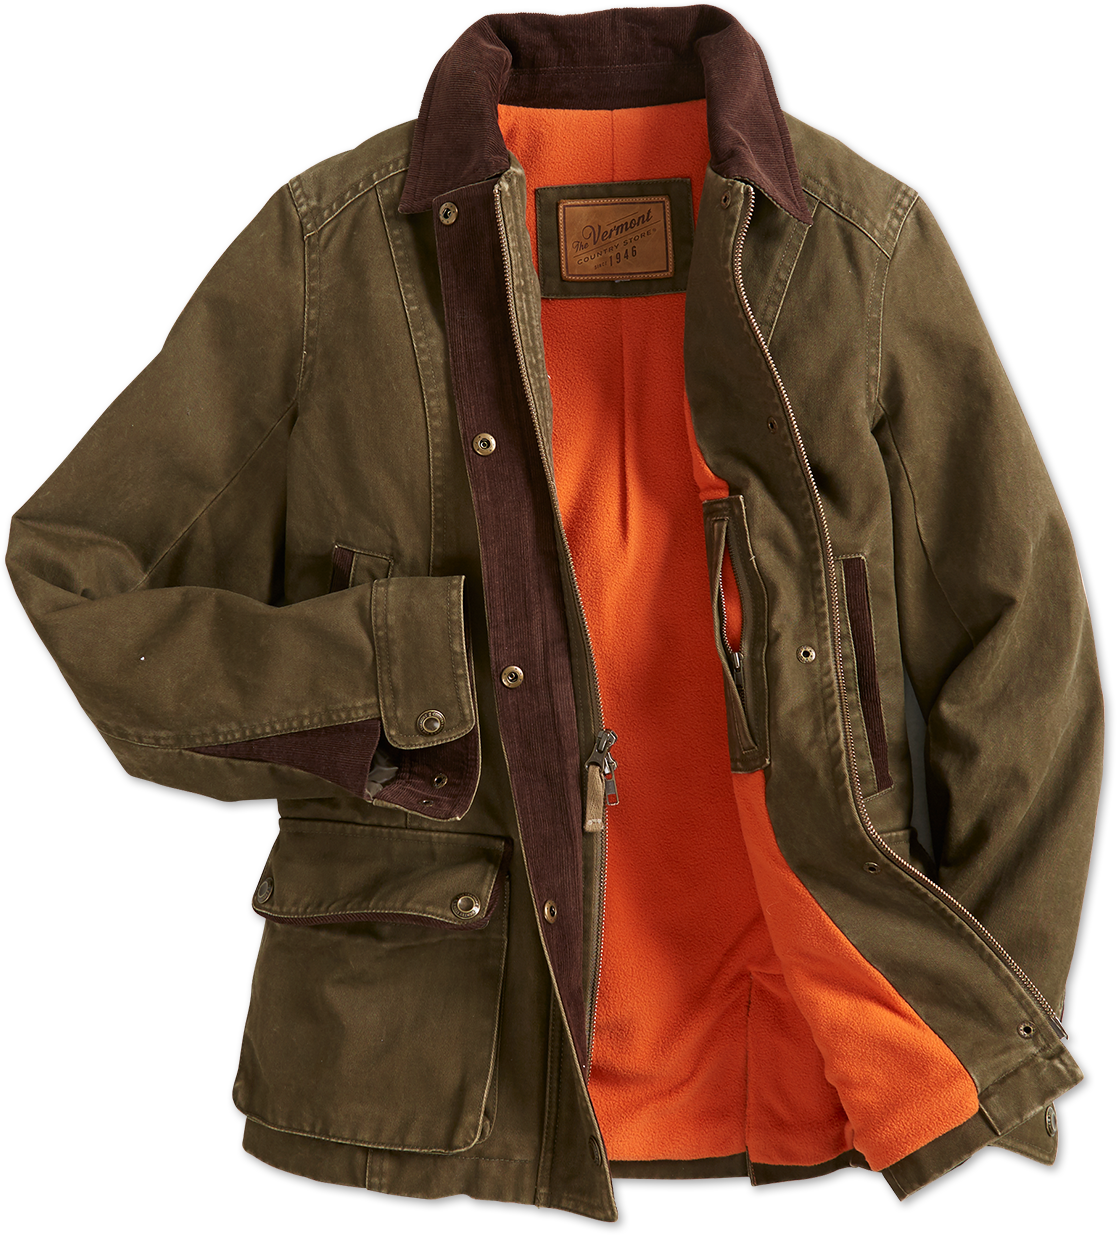 Women's Jackets & Coats | Duluth Trading CompanyWomen: Accessories, Bottoms, Footwear, Outerwear, Tops, Underwear and more.